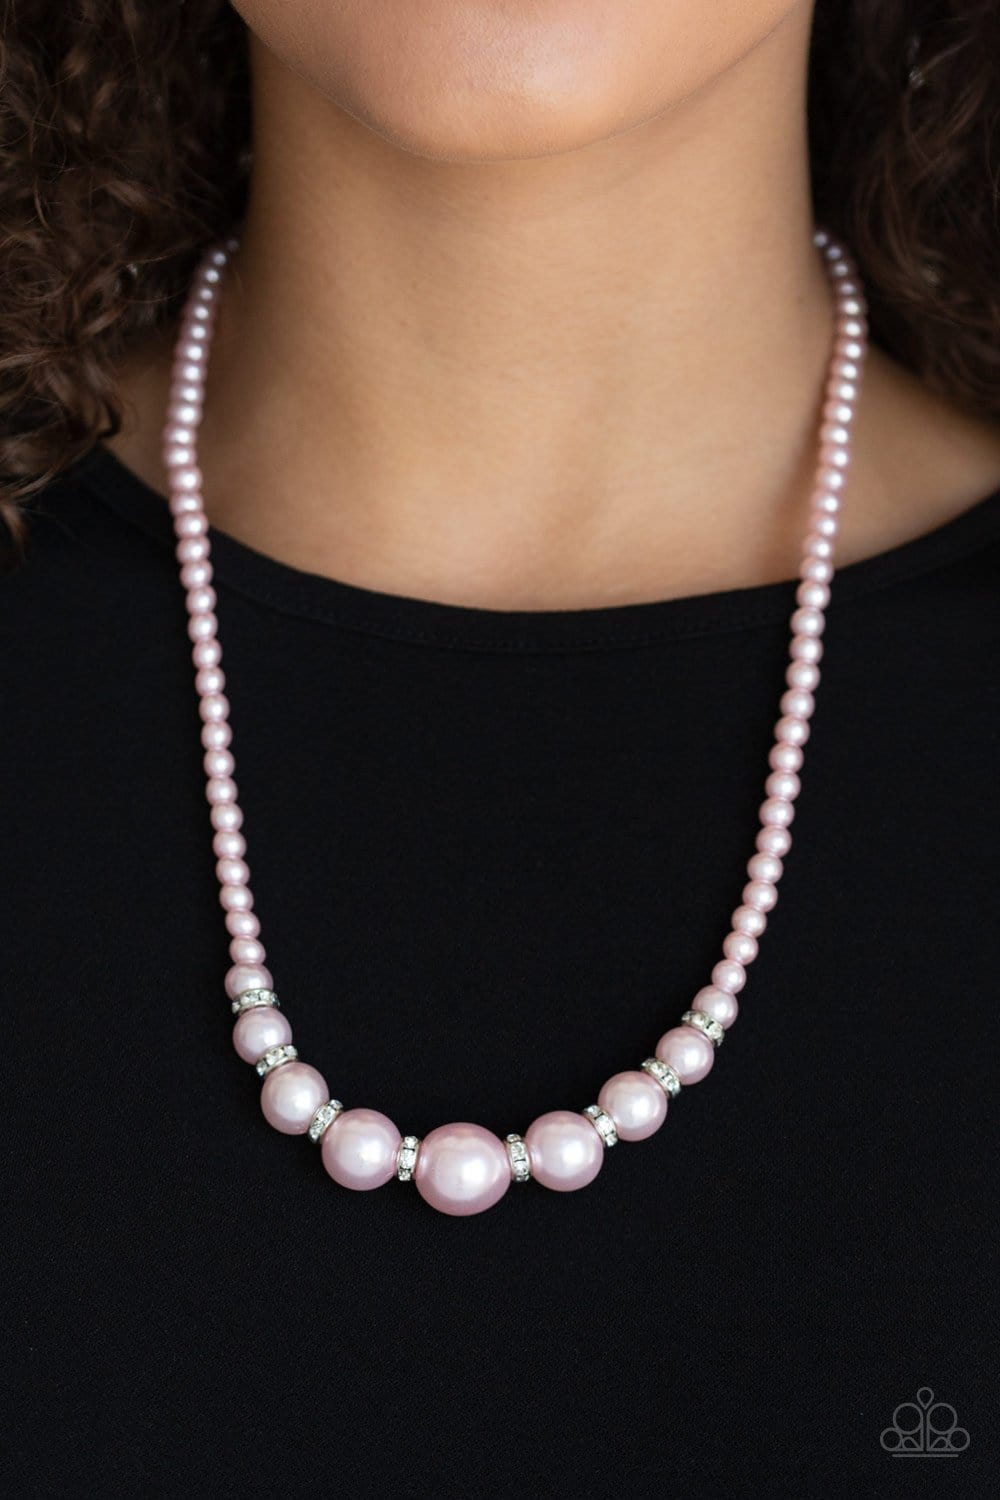 SoHo Sweetheart - Pink: Paparazzi Accessories - Jewels N' Thingz Boutique